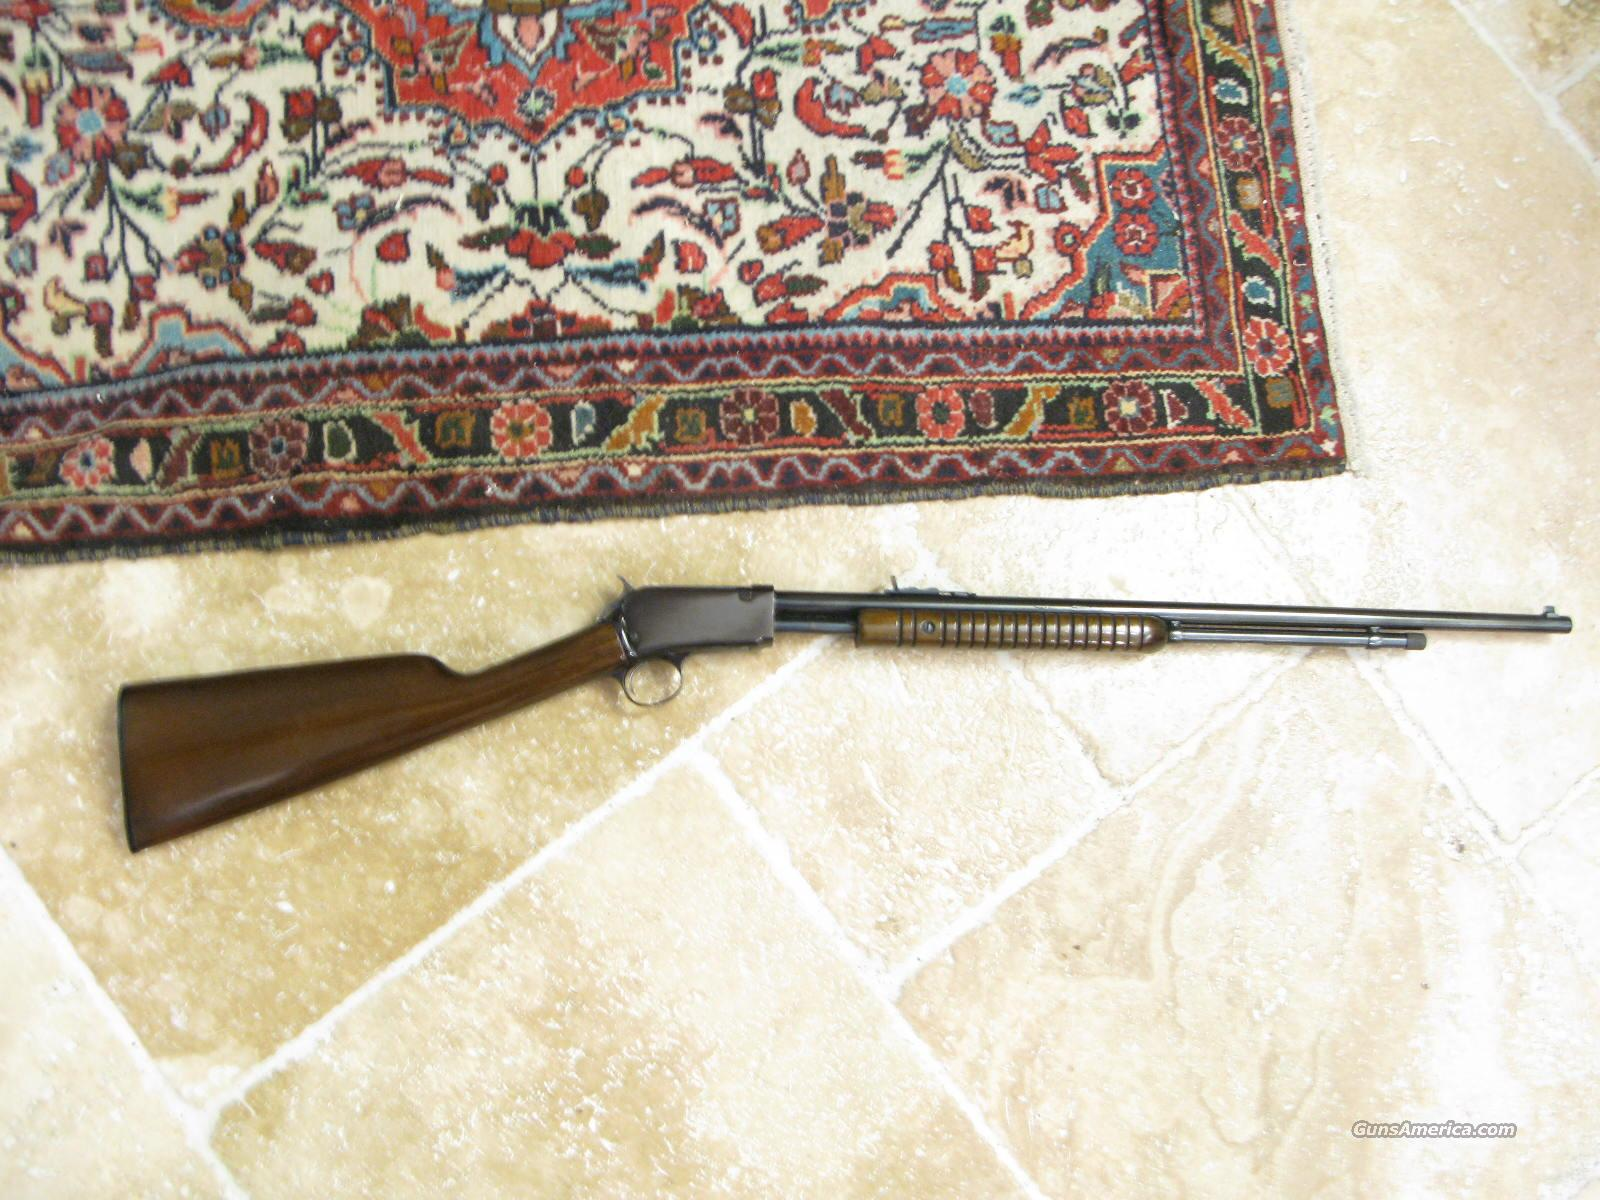 Rossi M-62 .22 S,L,LR Early Model  Like New Like Winchester 62 Pump  Guns > Rifles > Rossi Rifles > Other